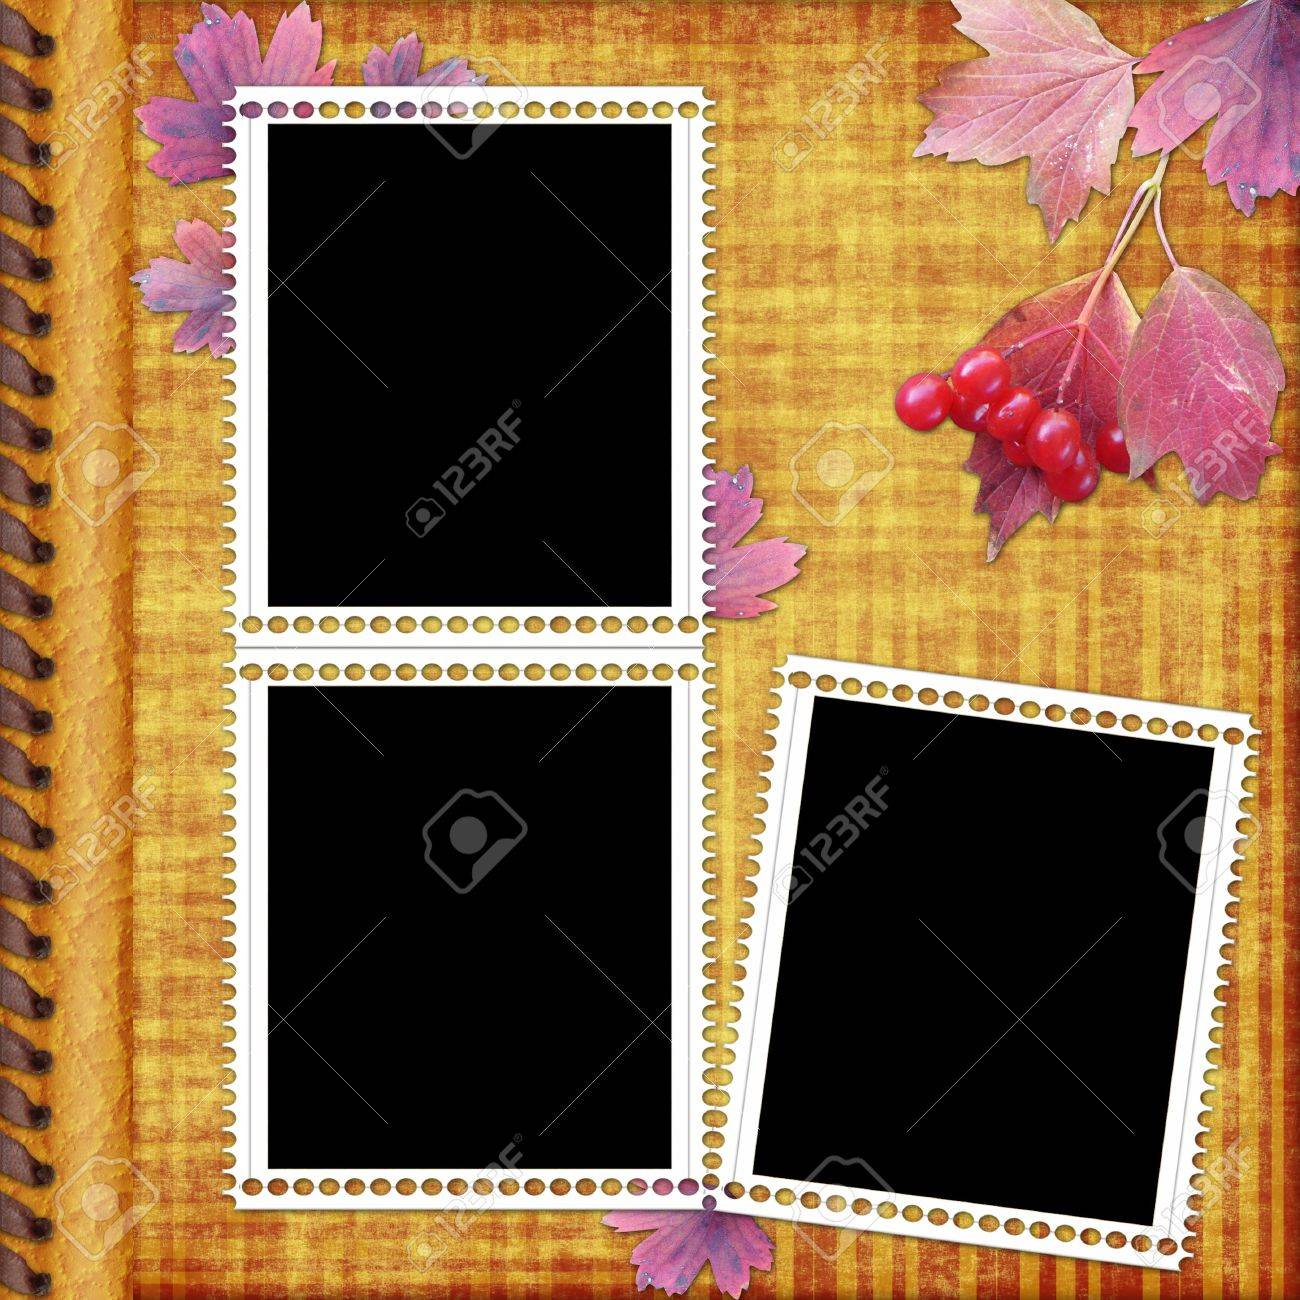 Album Cover With Frames Stock Photo, Picture And Royalty Free Image ...